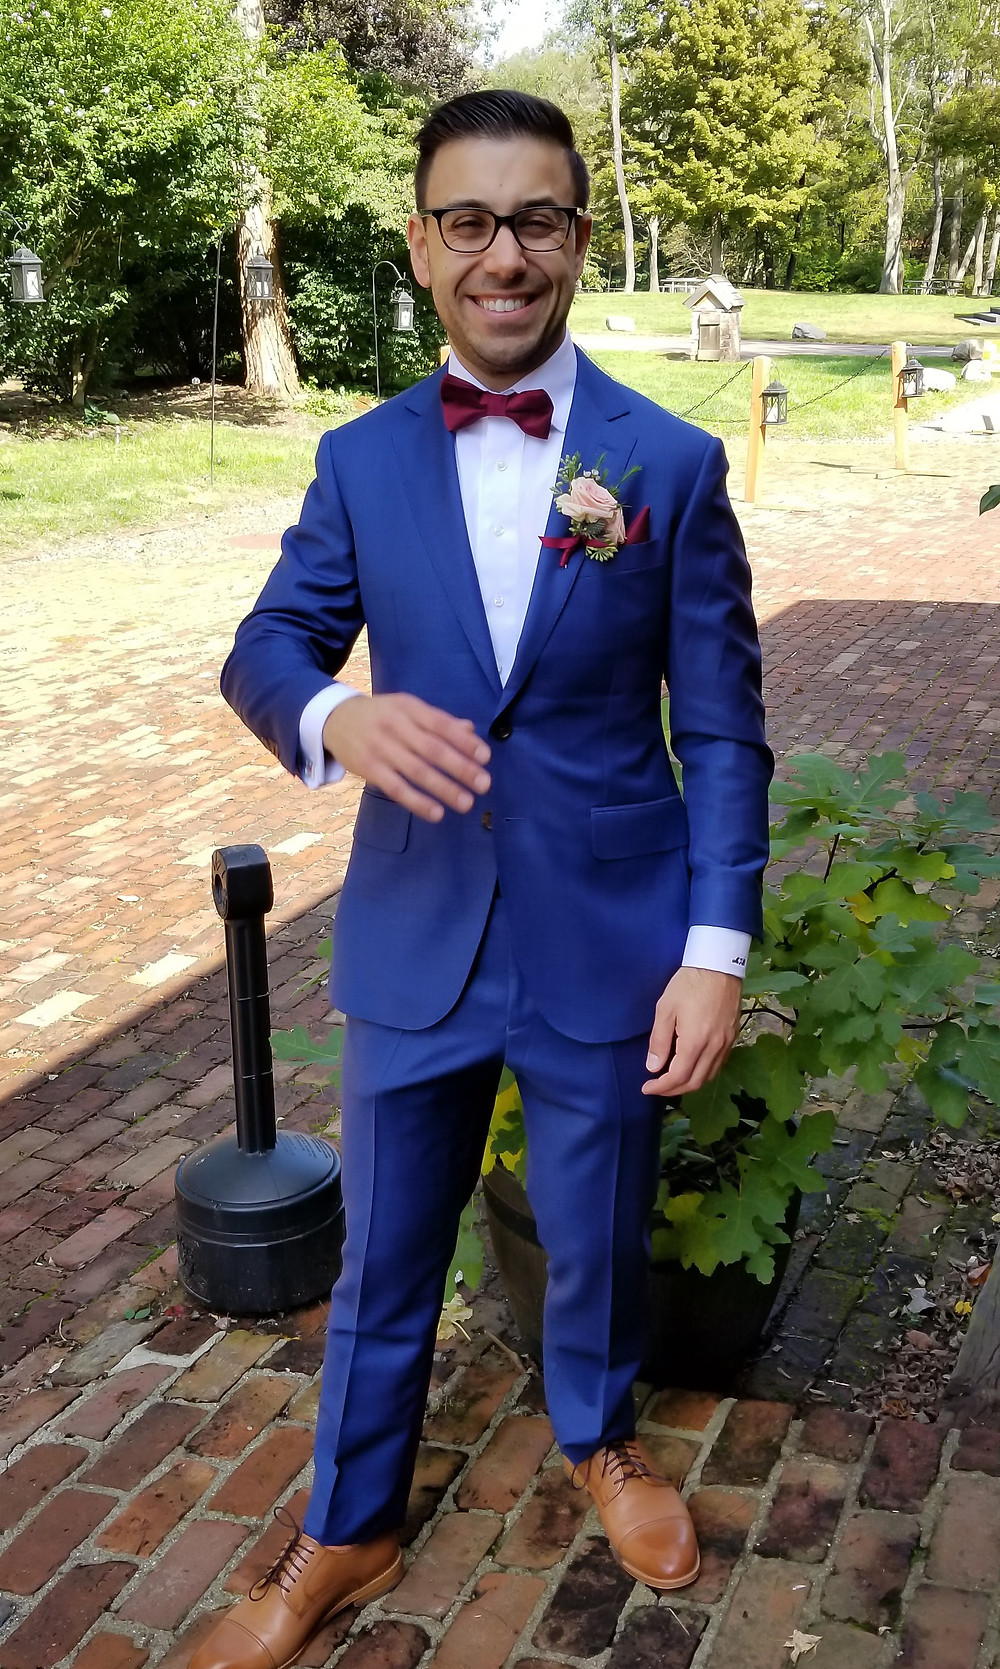 Groom in his blue suit and blush boutonniere